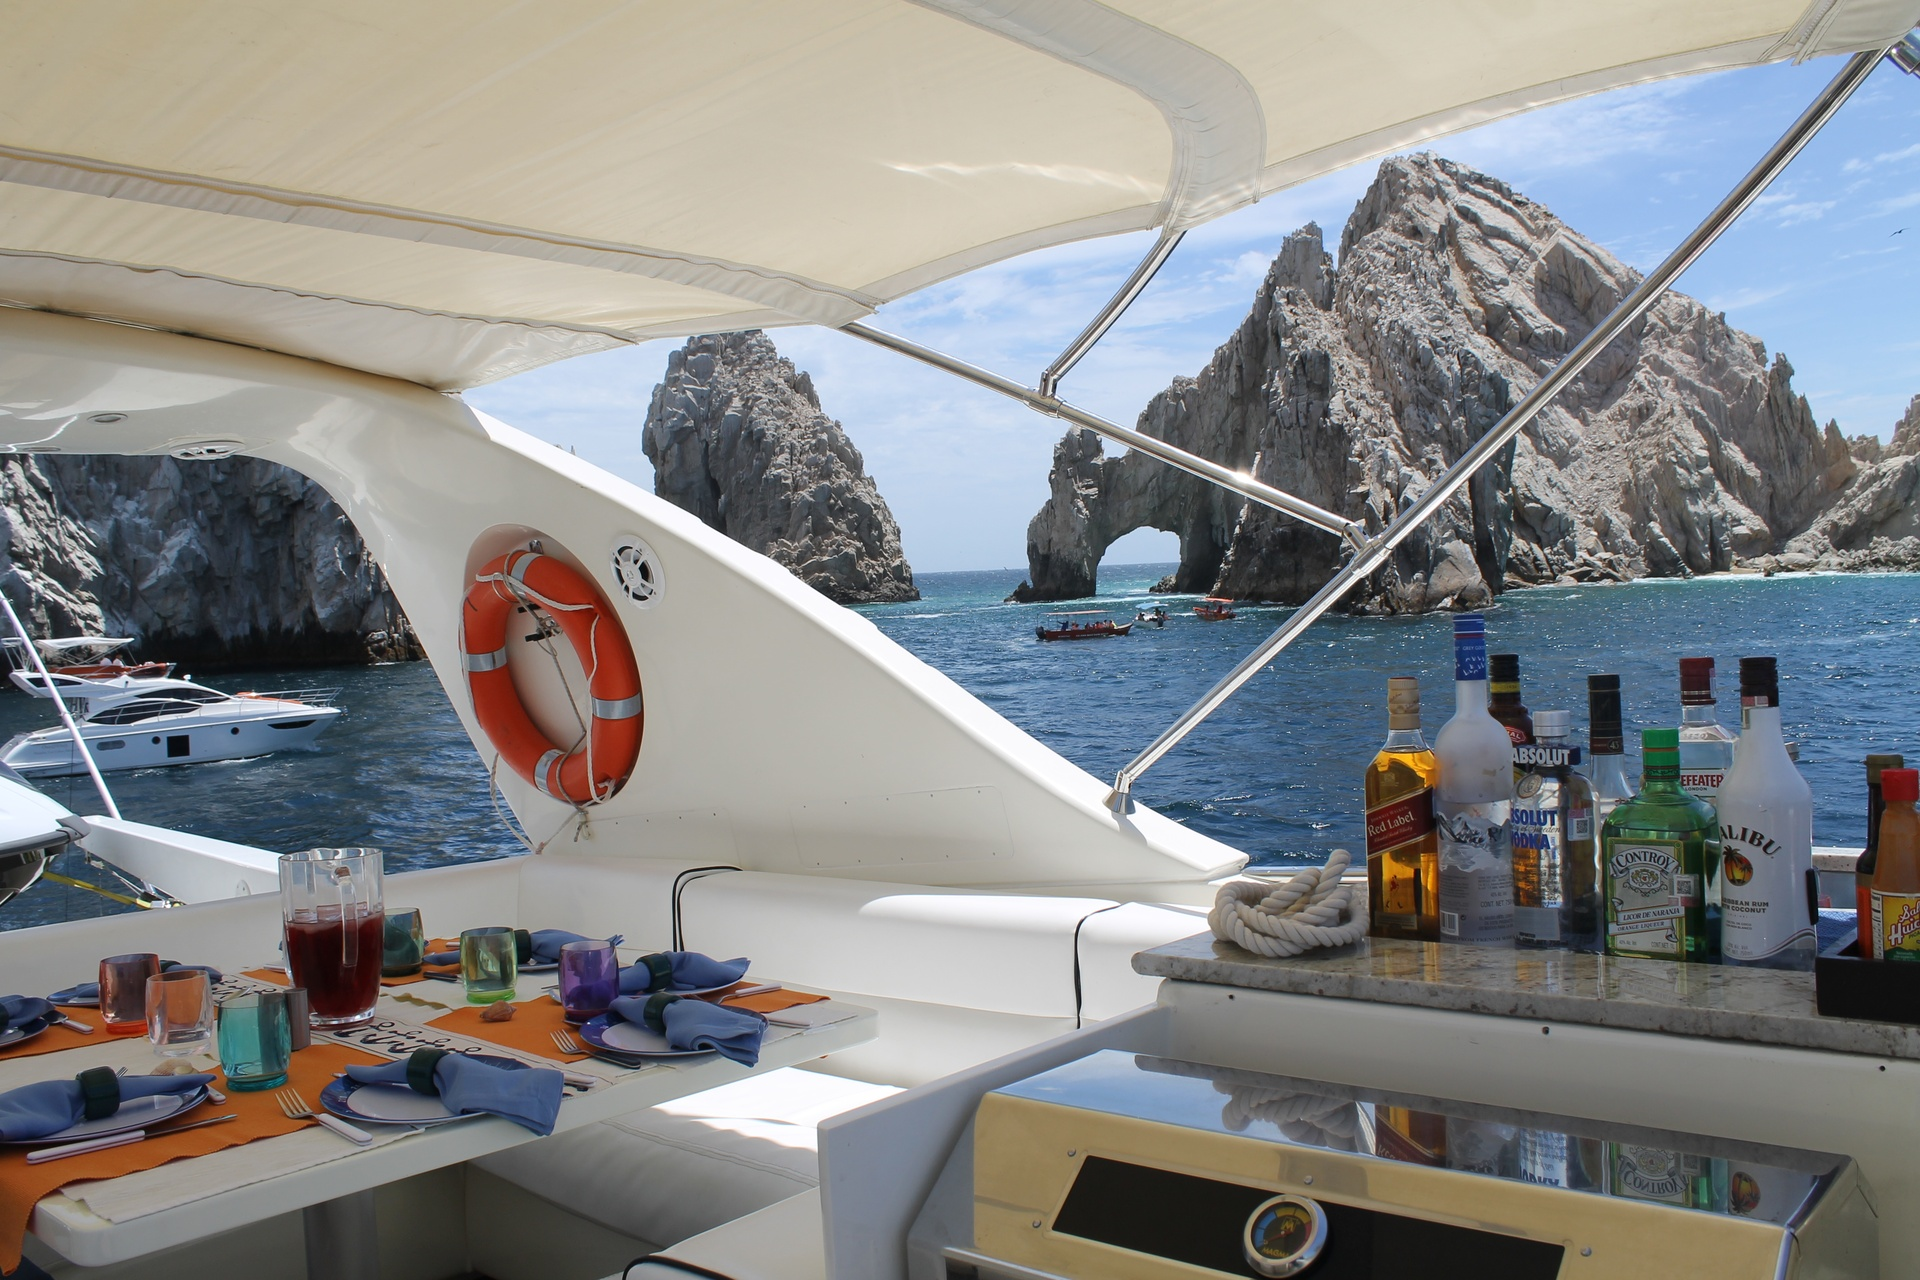 event and group boat rentals in Cabo San Lucas